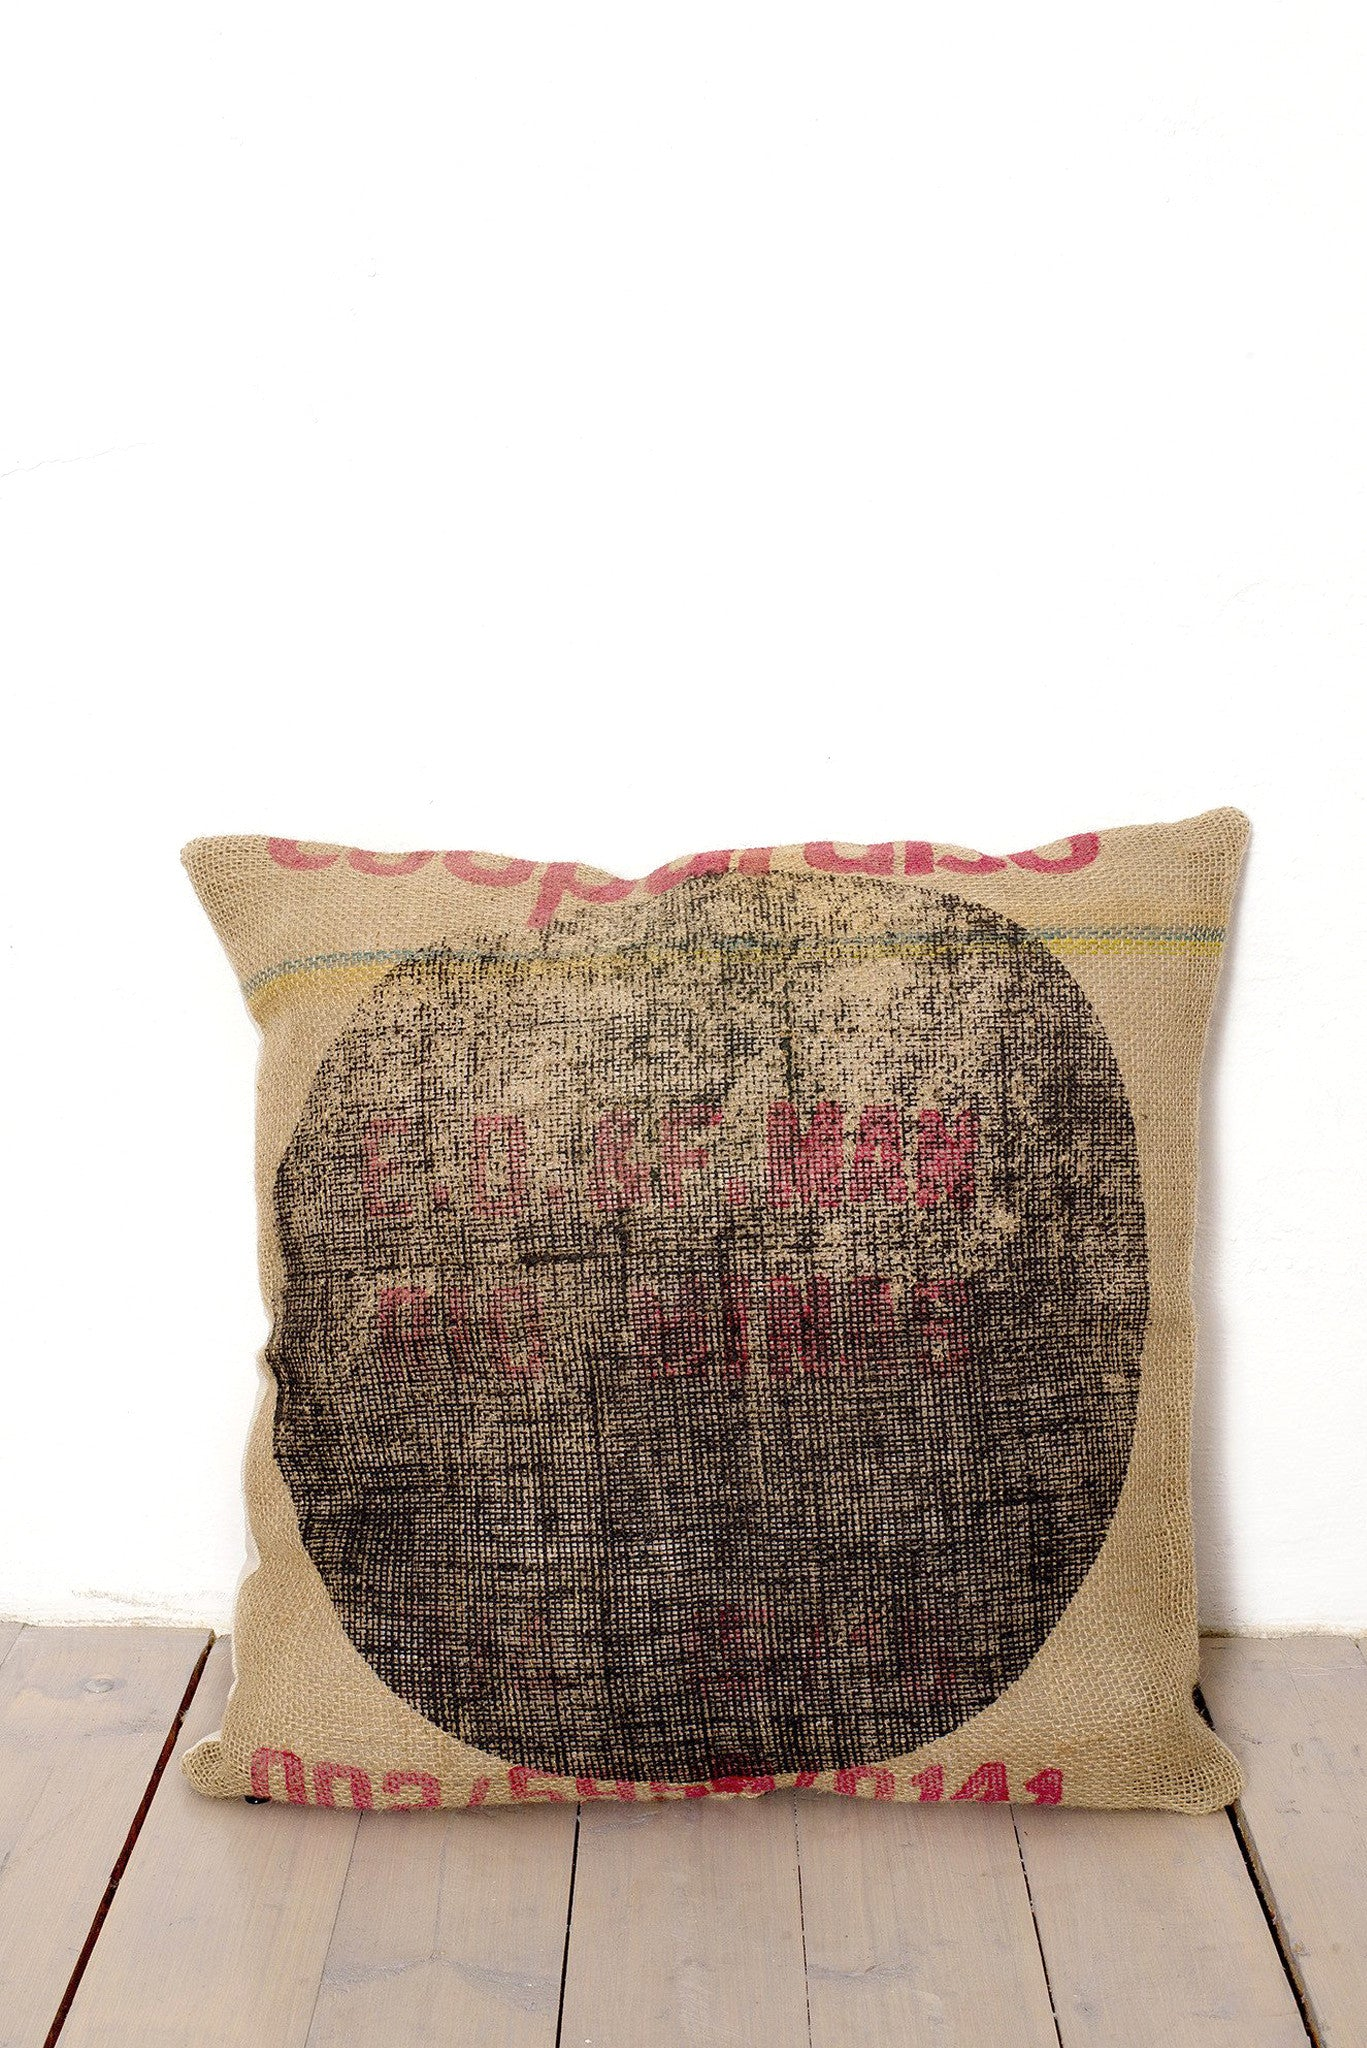 BURLAP COFFEE BAG PILLOWCASE